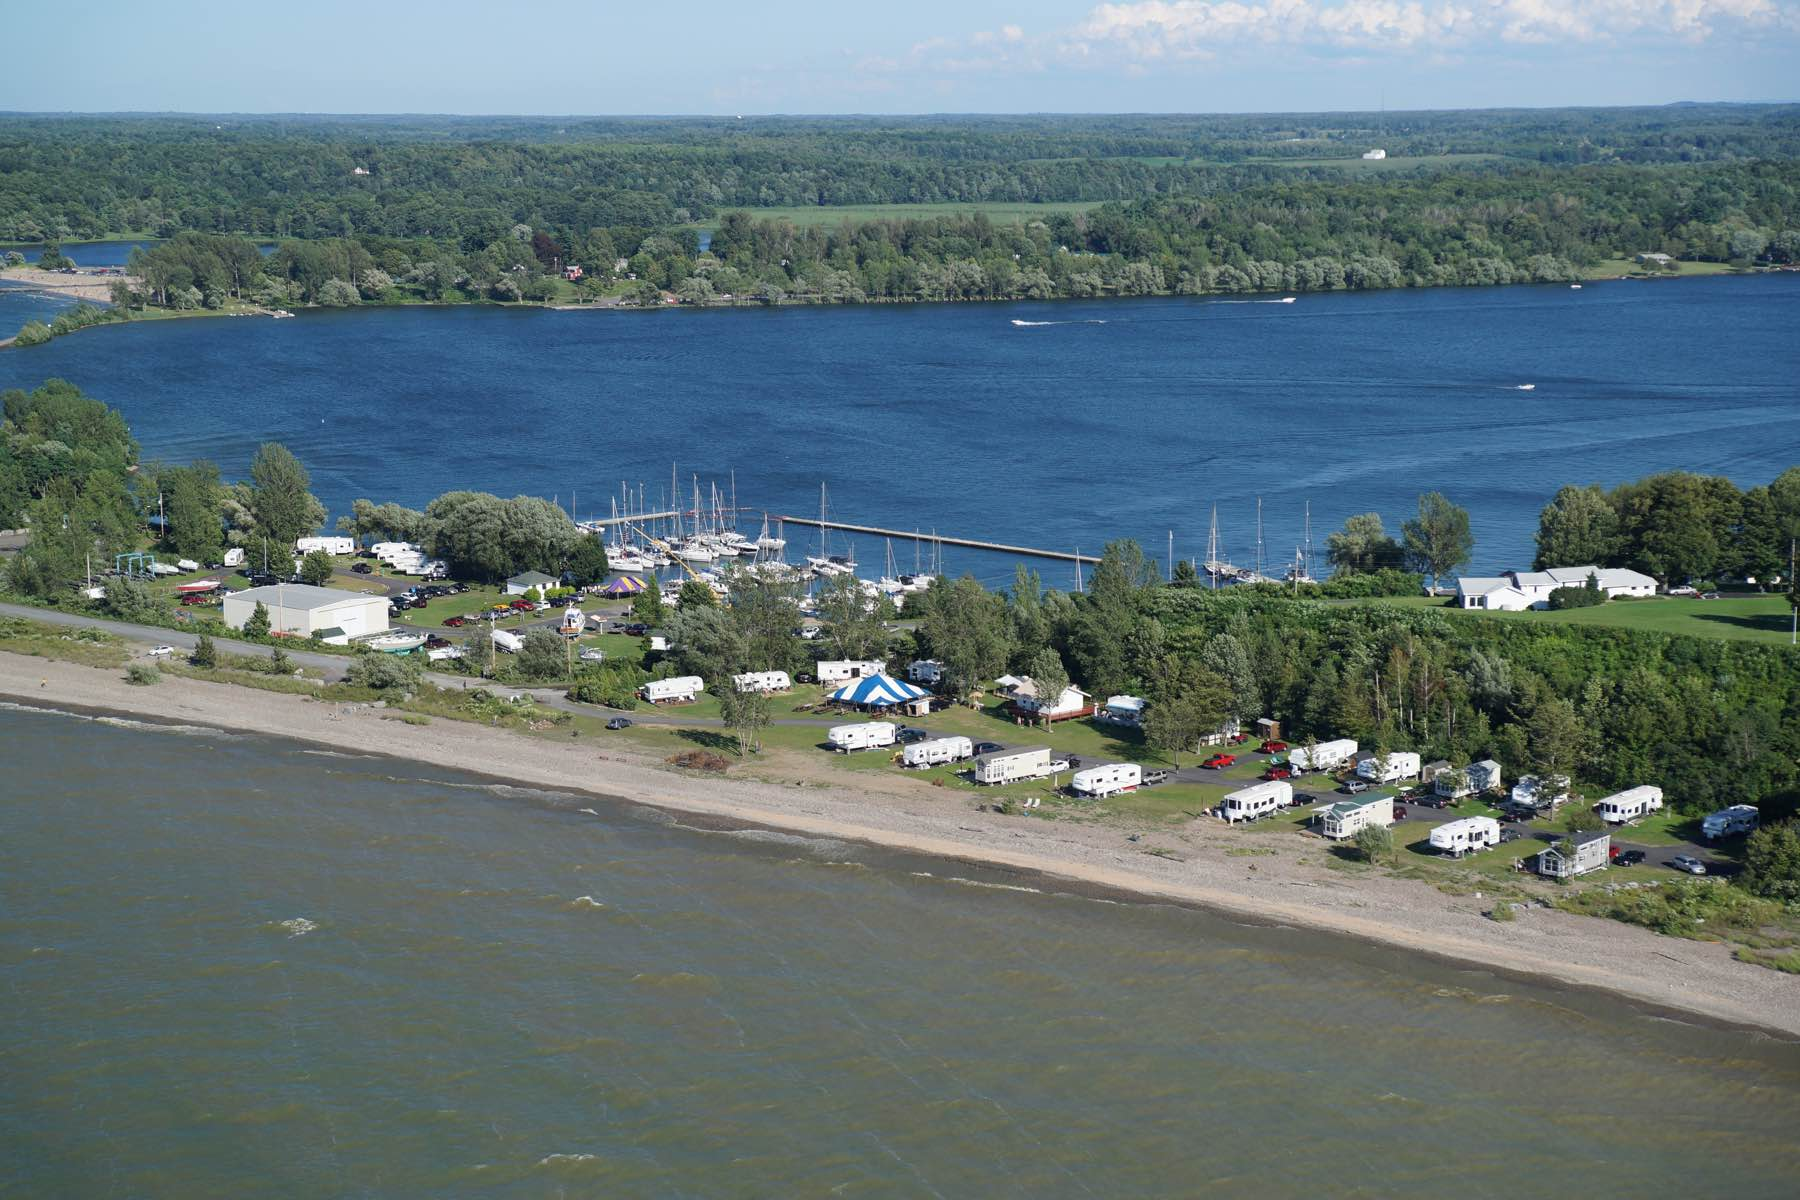 Aerial photo of Fair Point Marina RV Resort